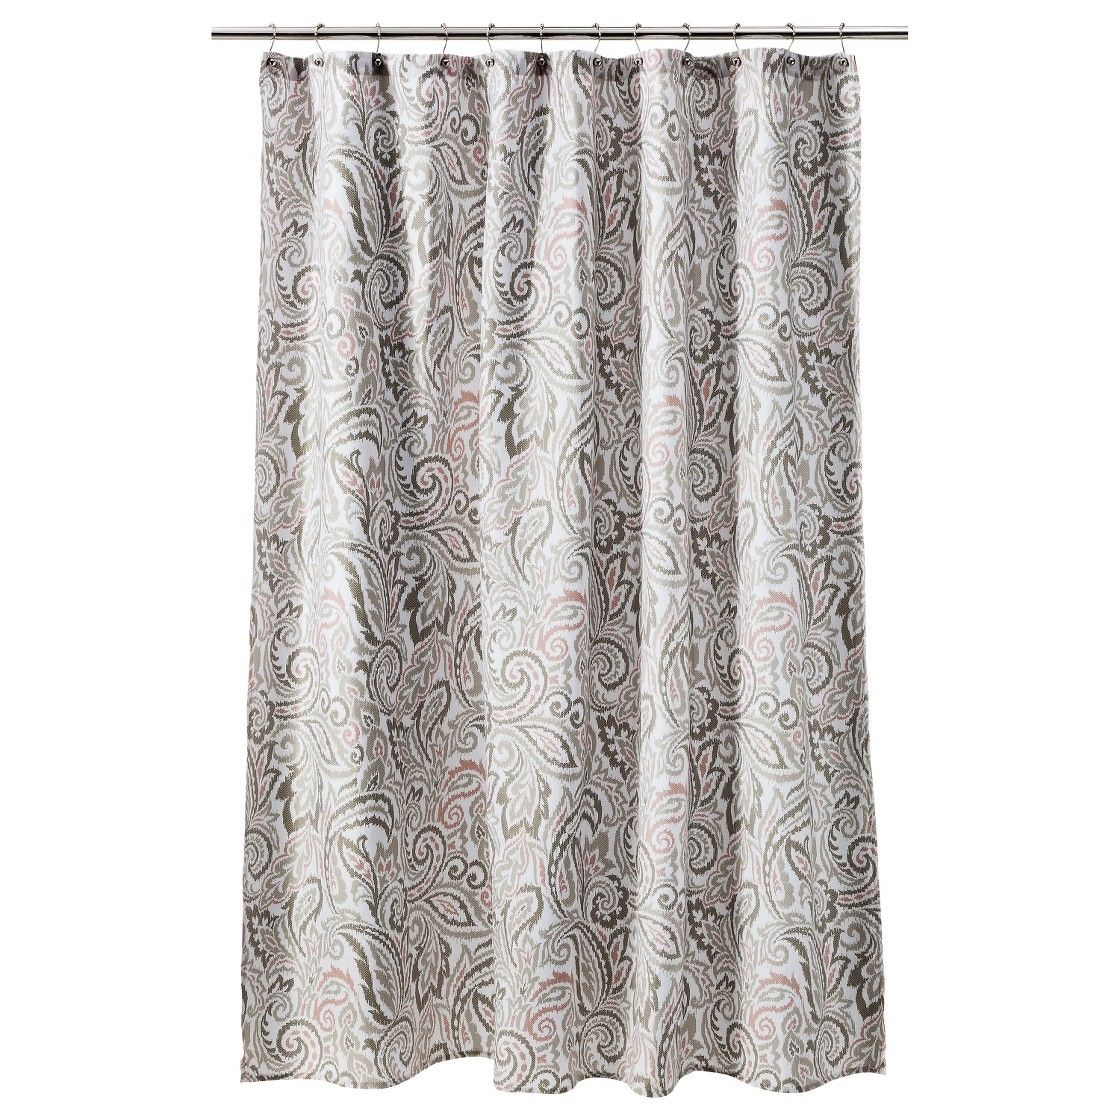 Threshold paisley shower curtain graycoral ideas for the